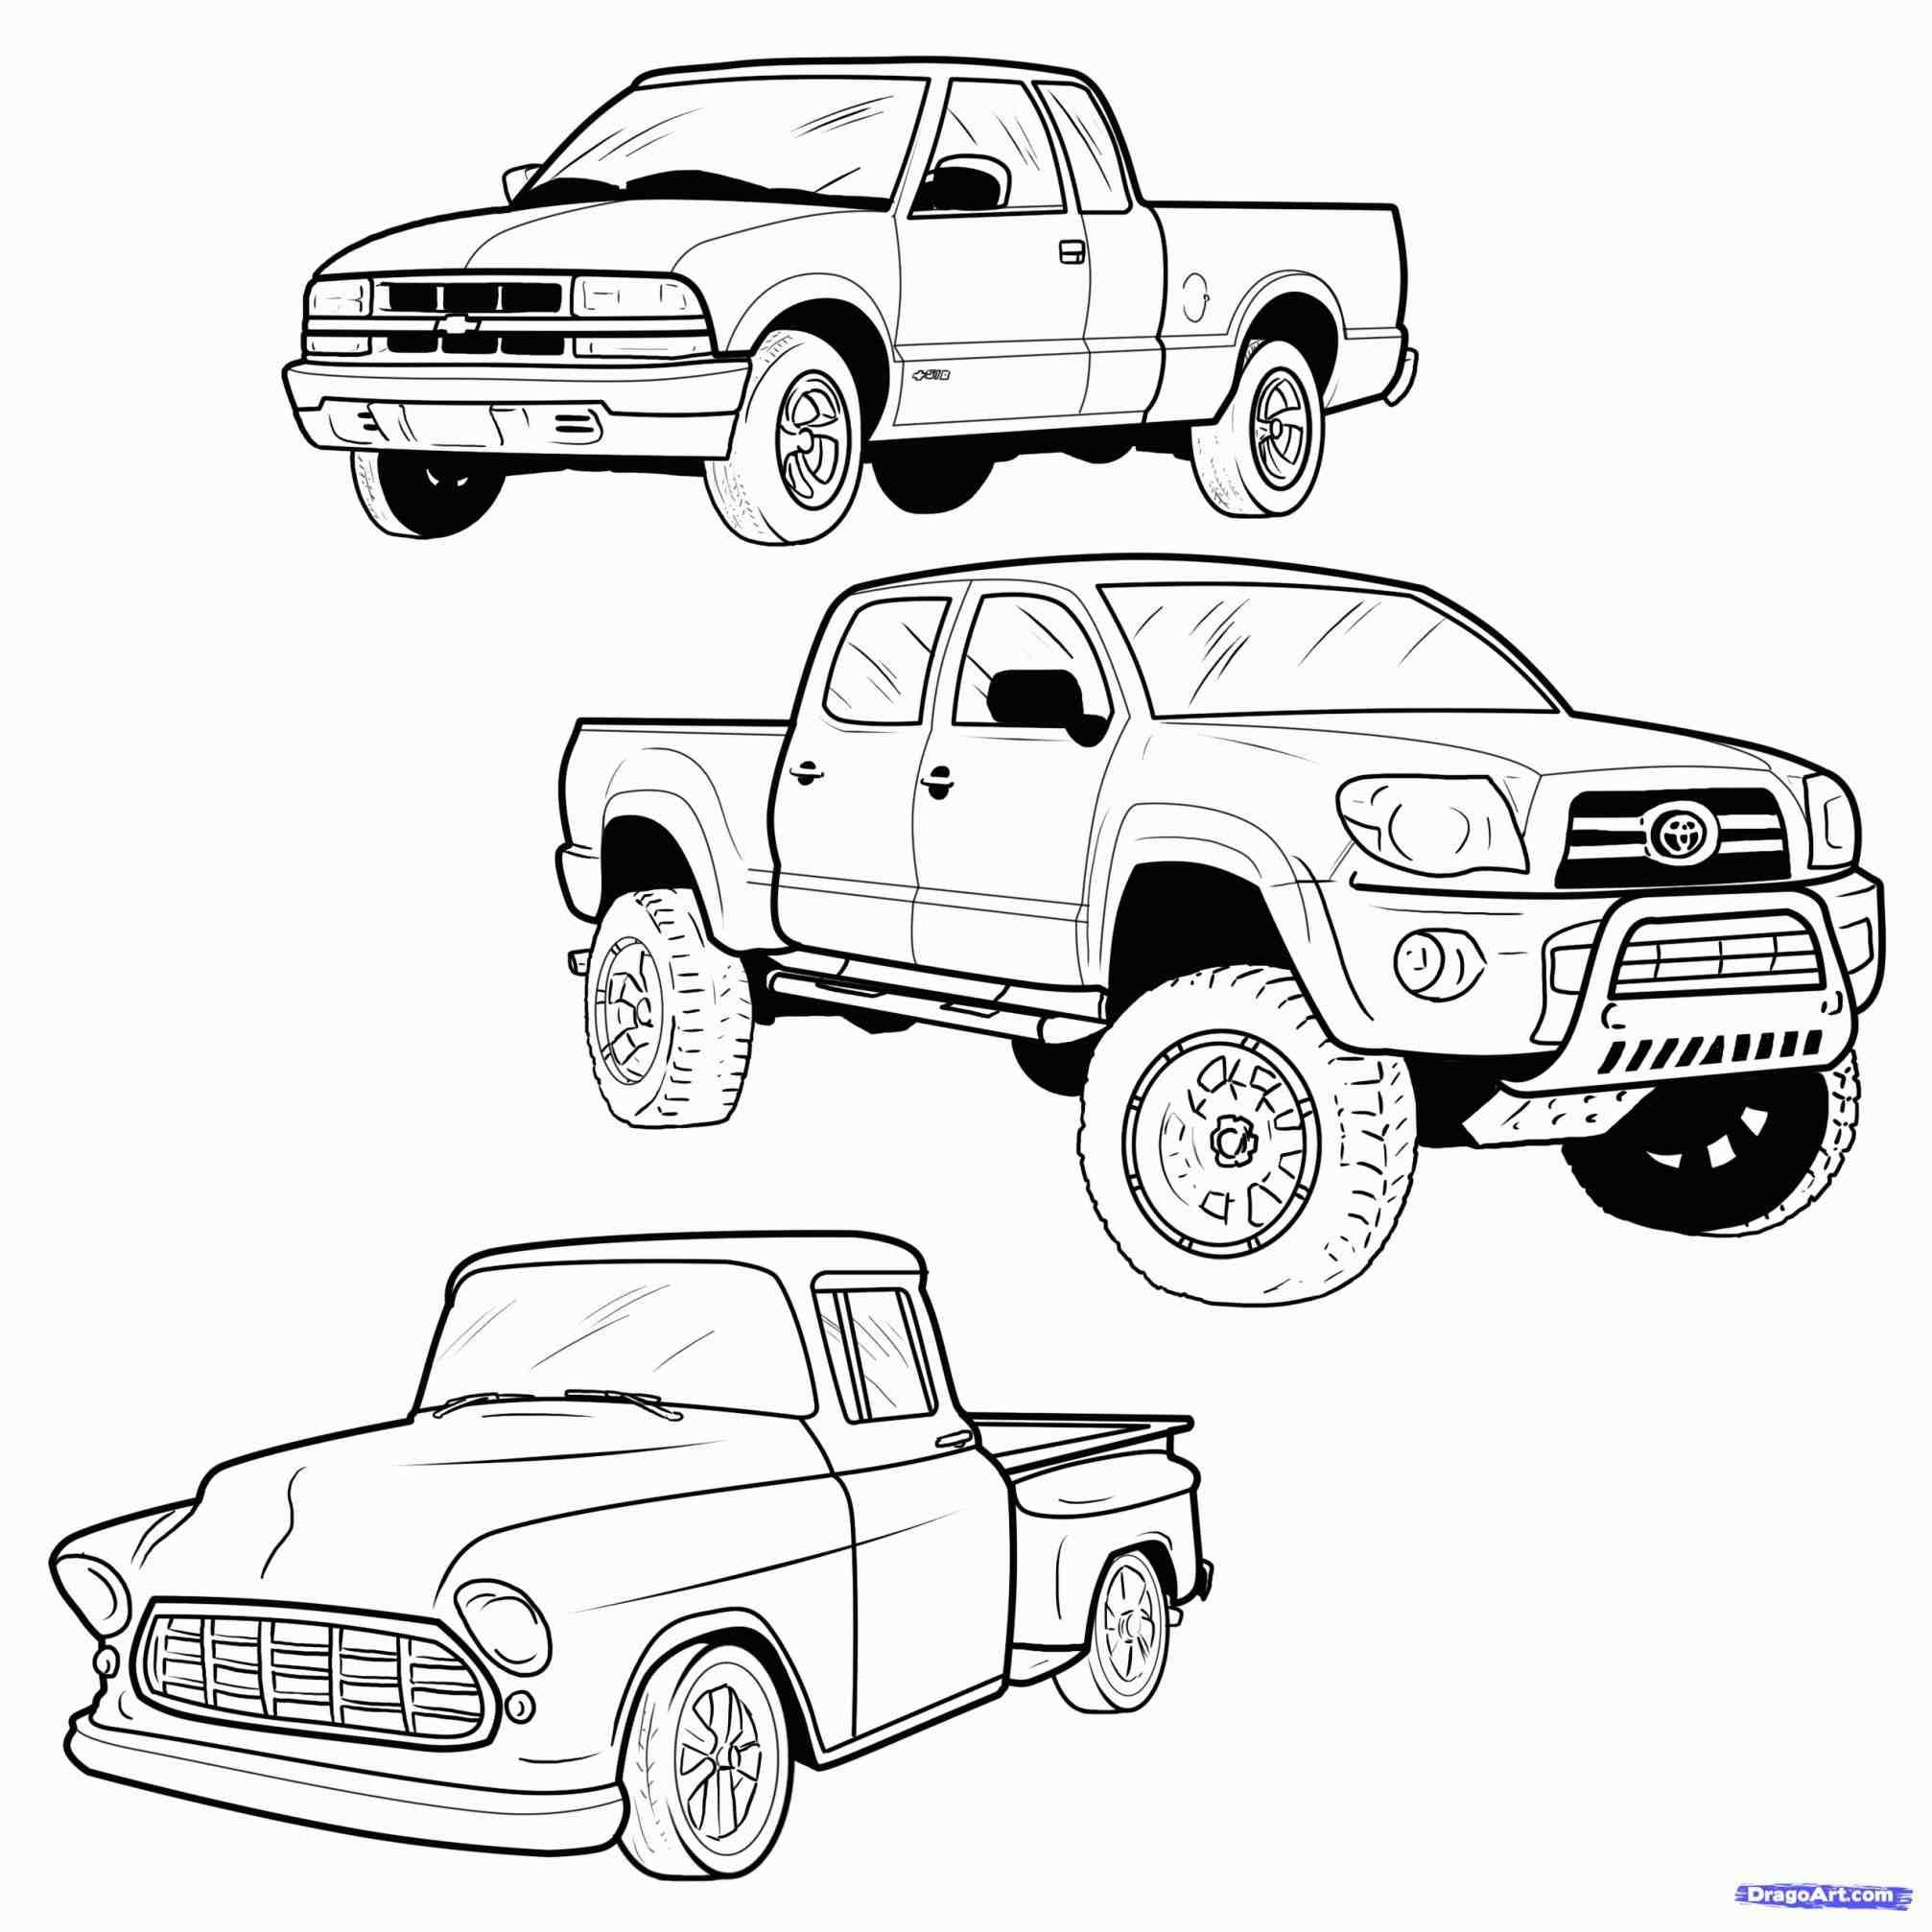 Convertible Coloring Pages At Getcolorings